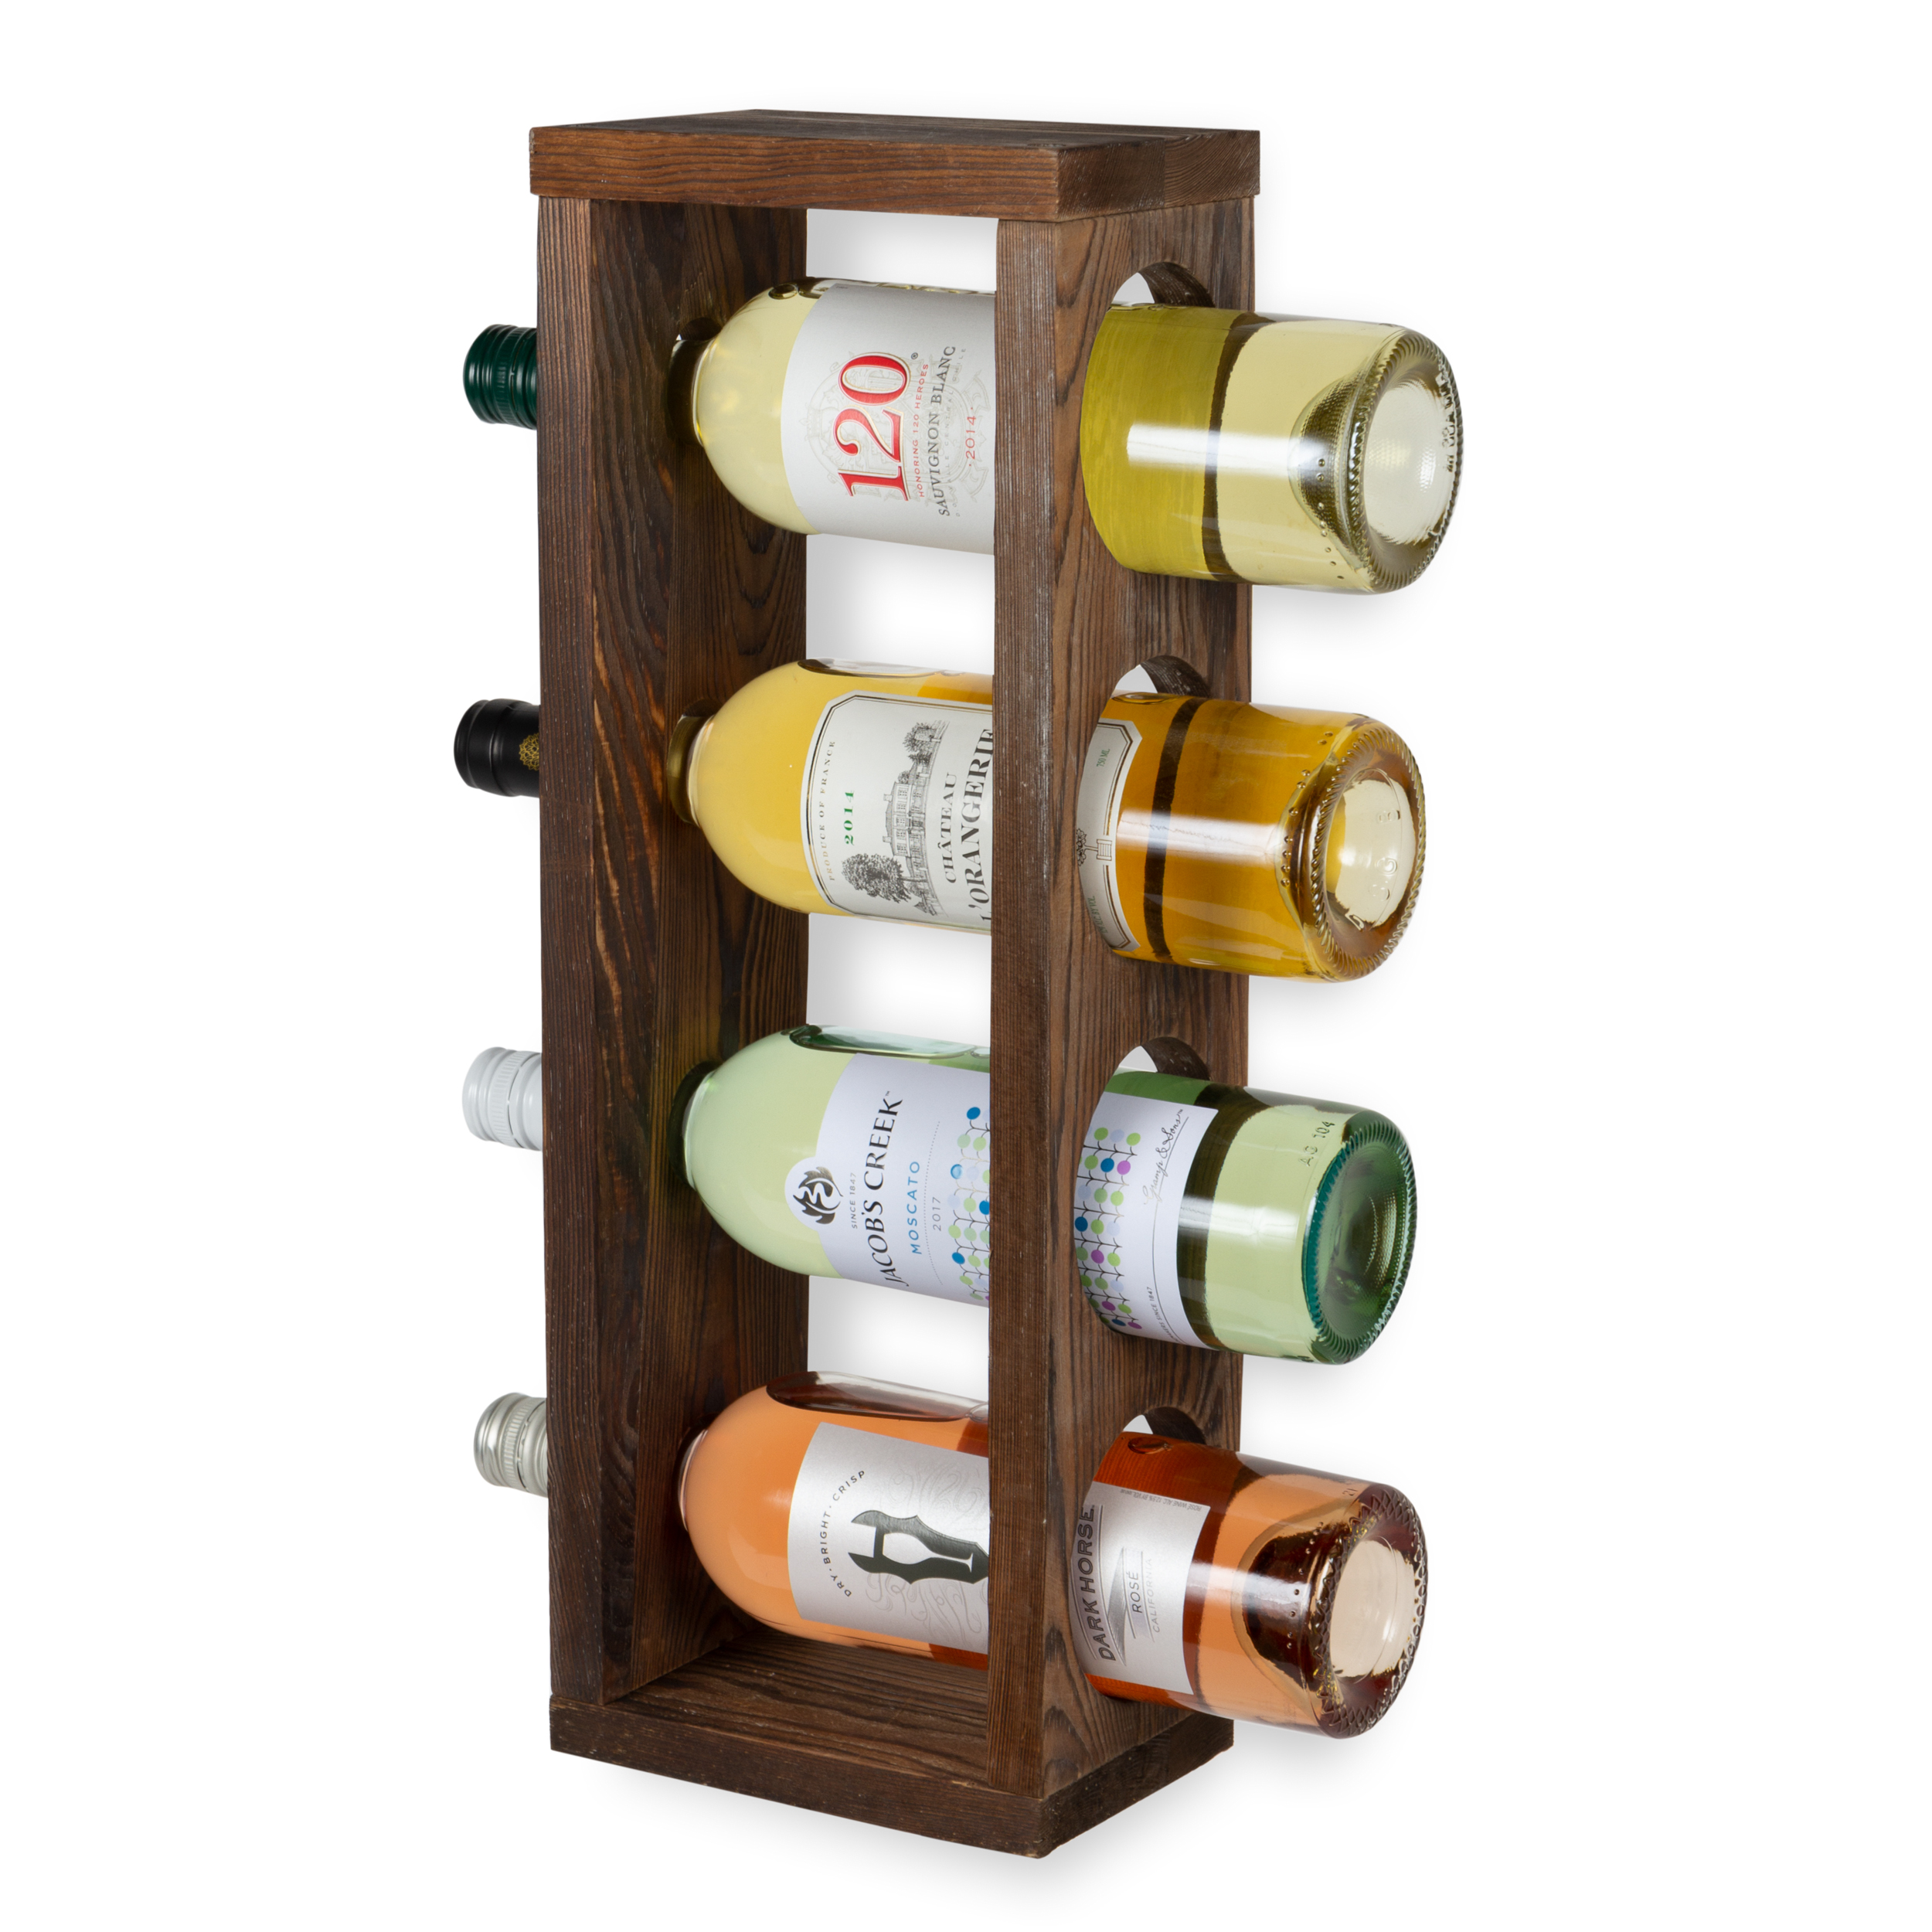 rustic state sonoma wood wine rack wall mountable or table top bottle holder holds 4 bottles